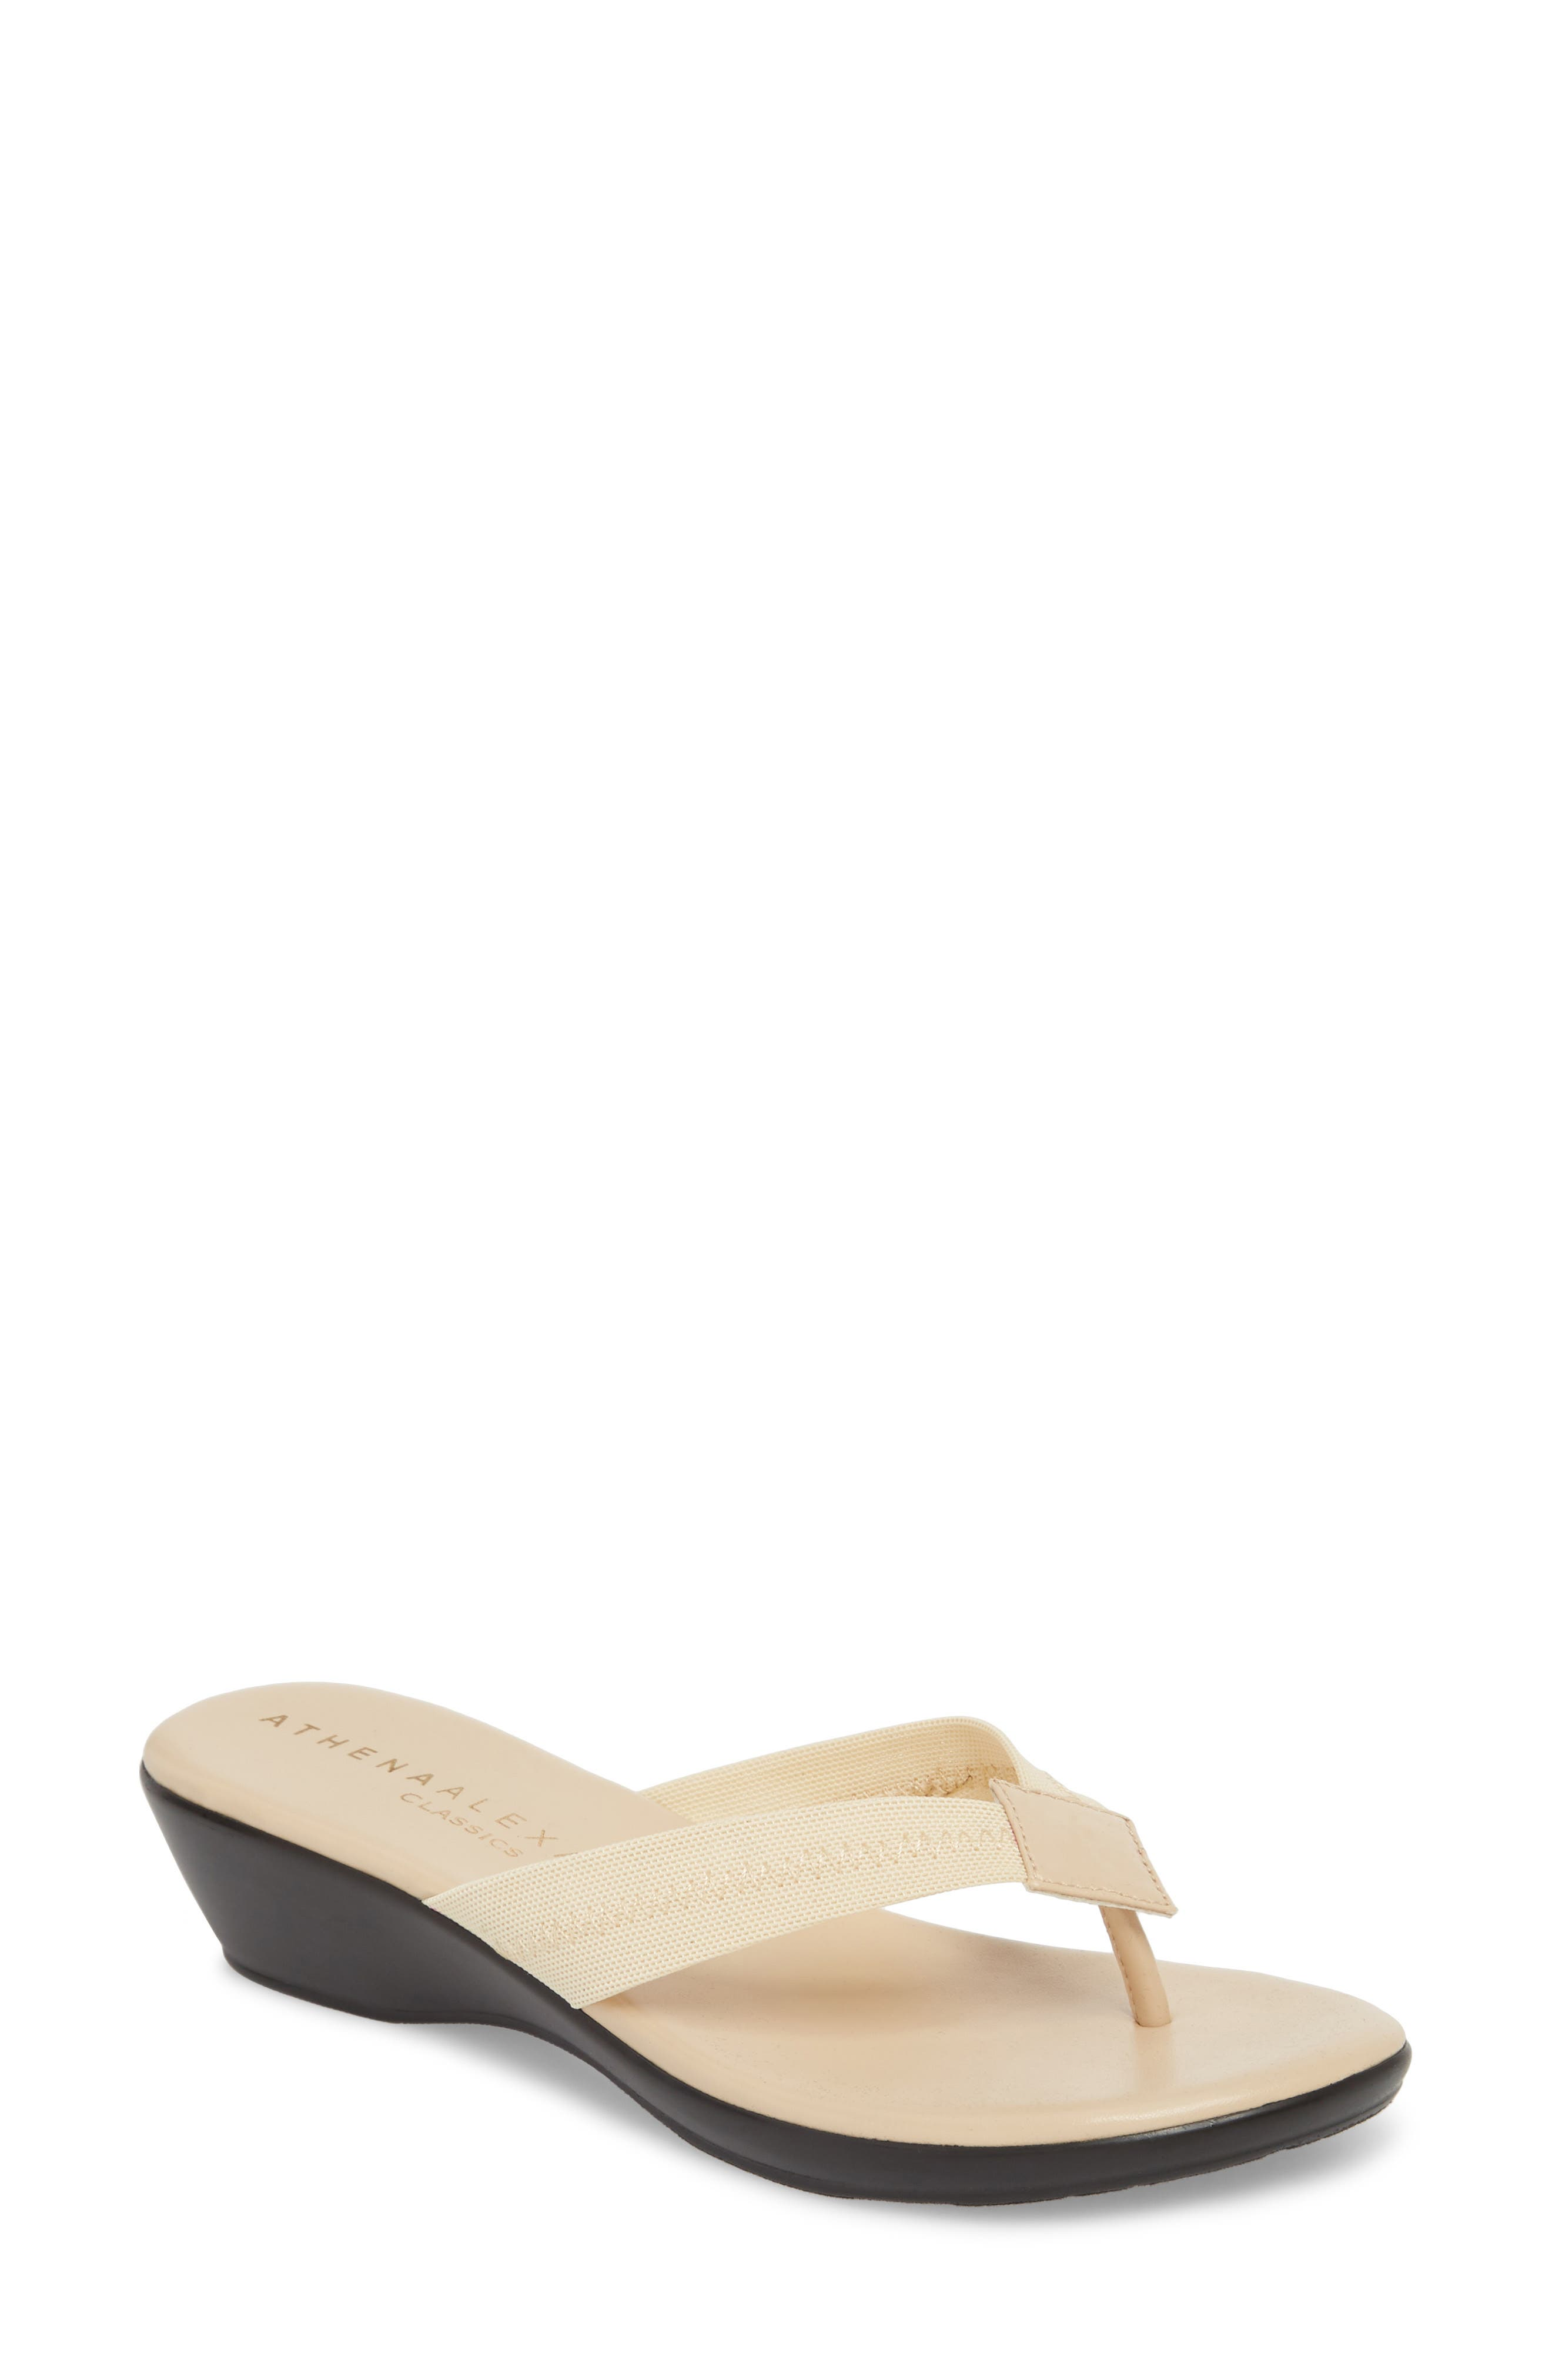 Ying Flip Flop,                         Main,                         color, BEIGE STRETCH FABRIC